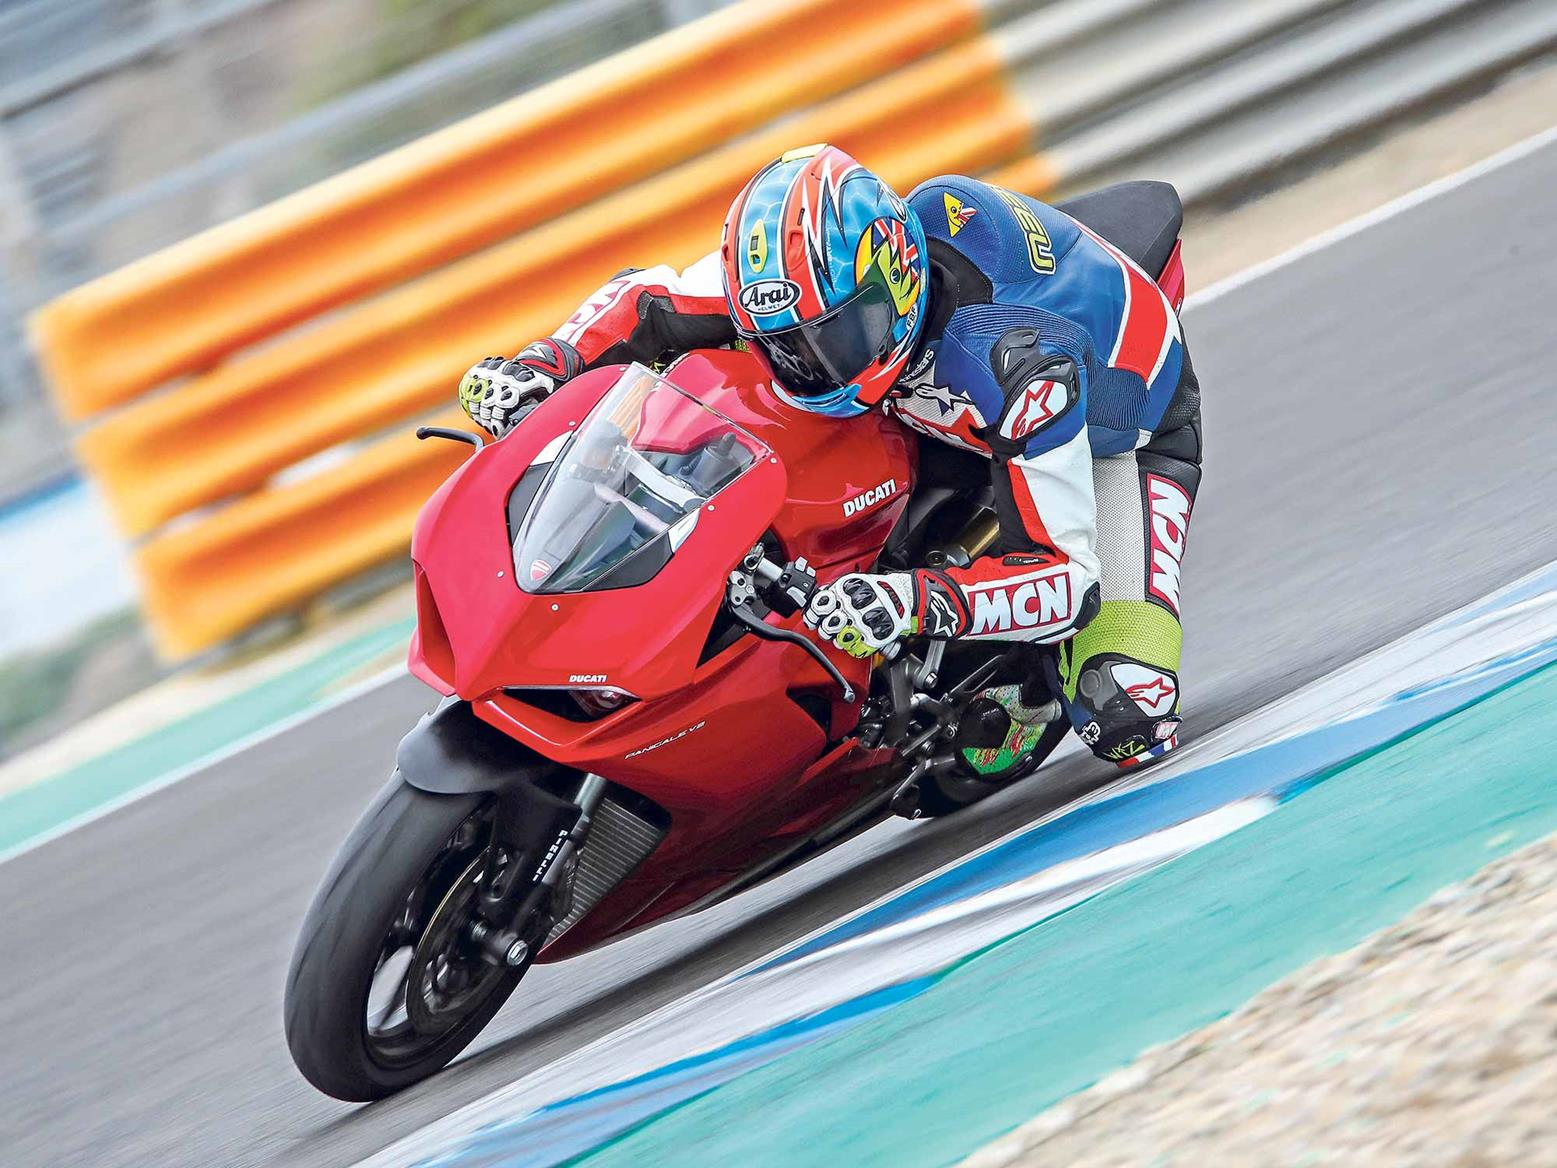 On track on the Ducati Panigale V2